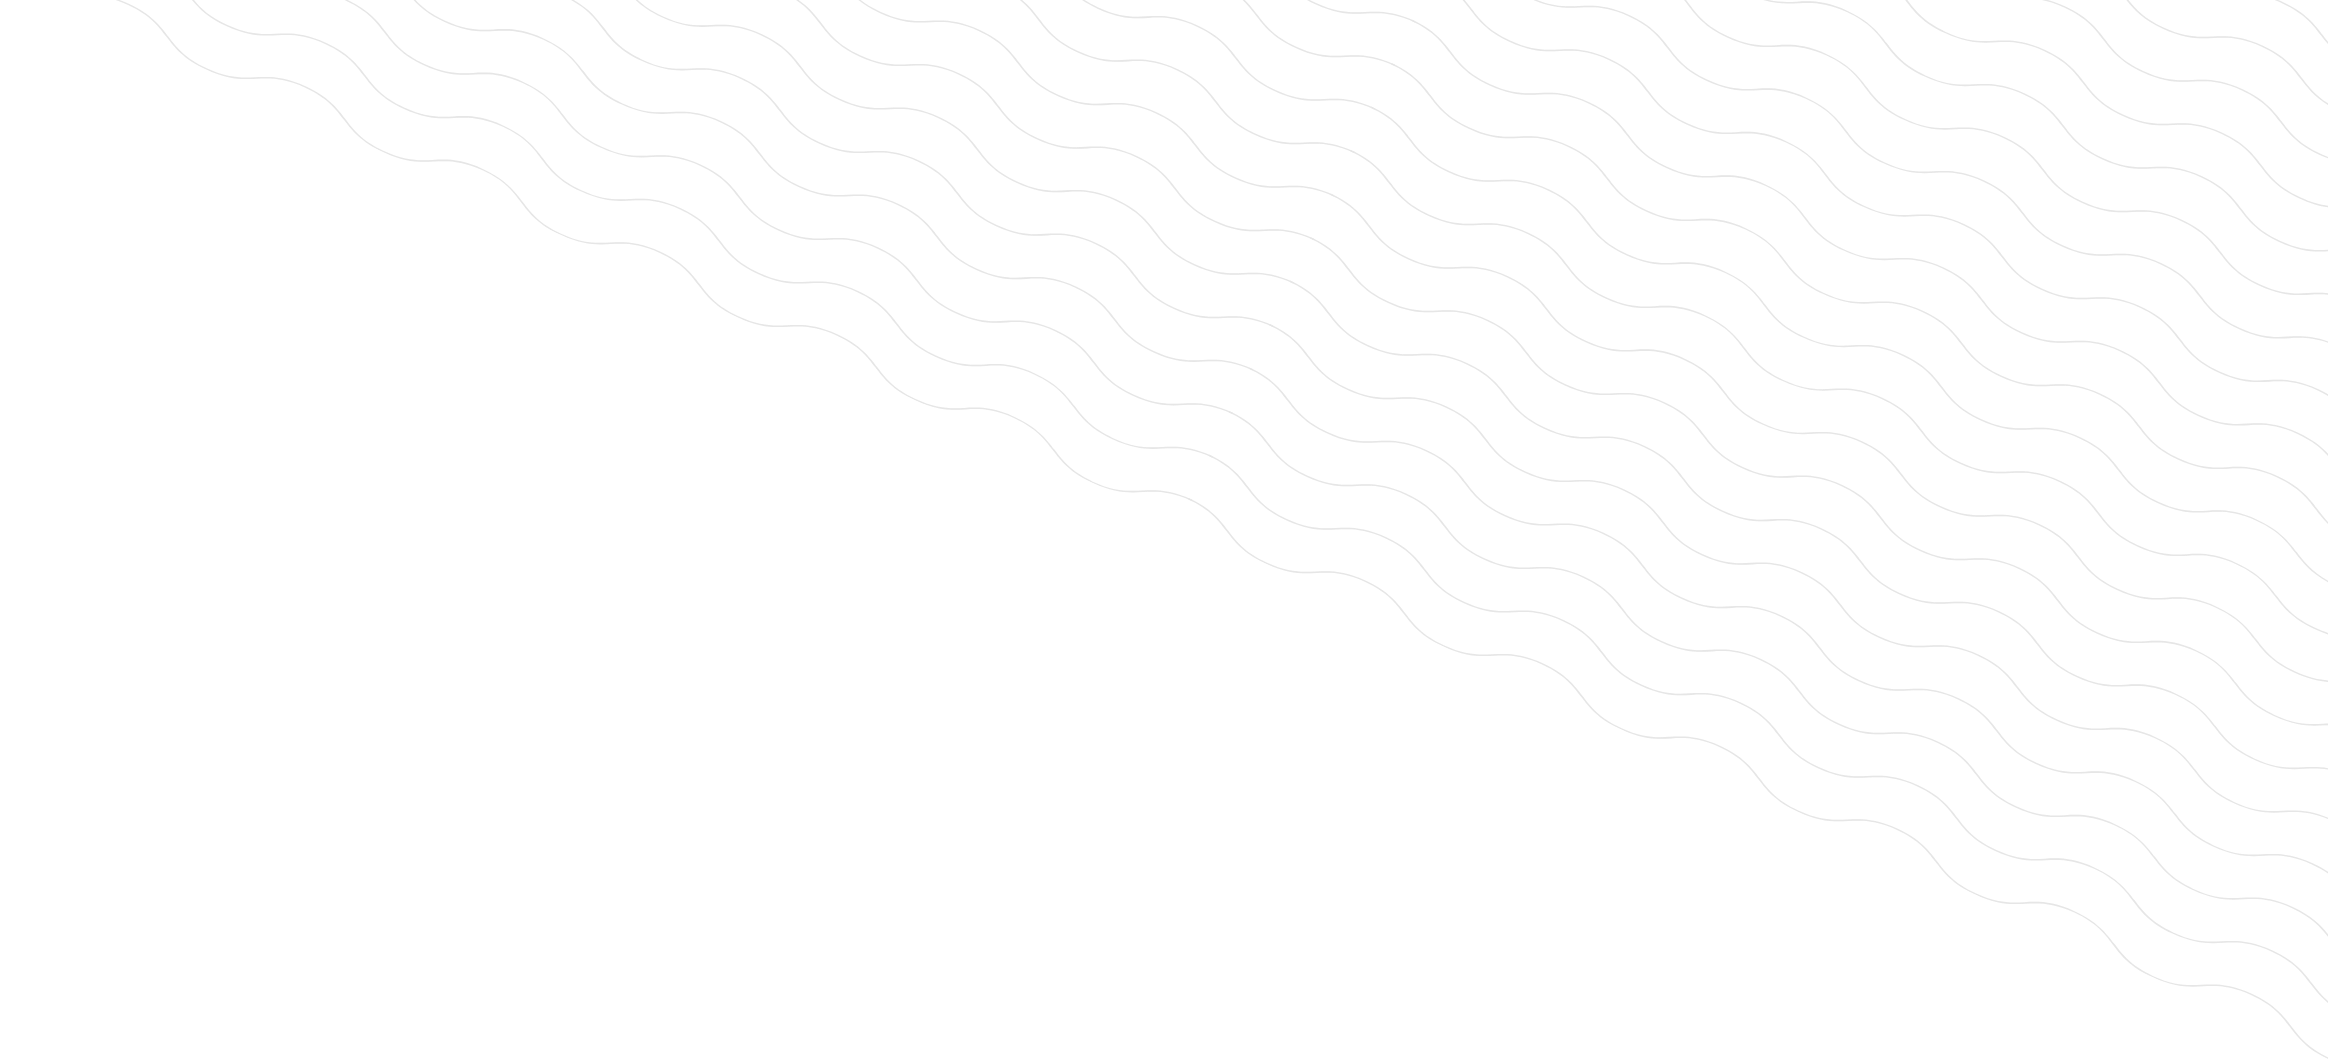 curved-lines